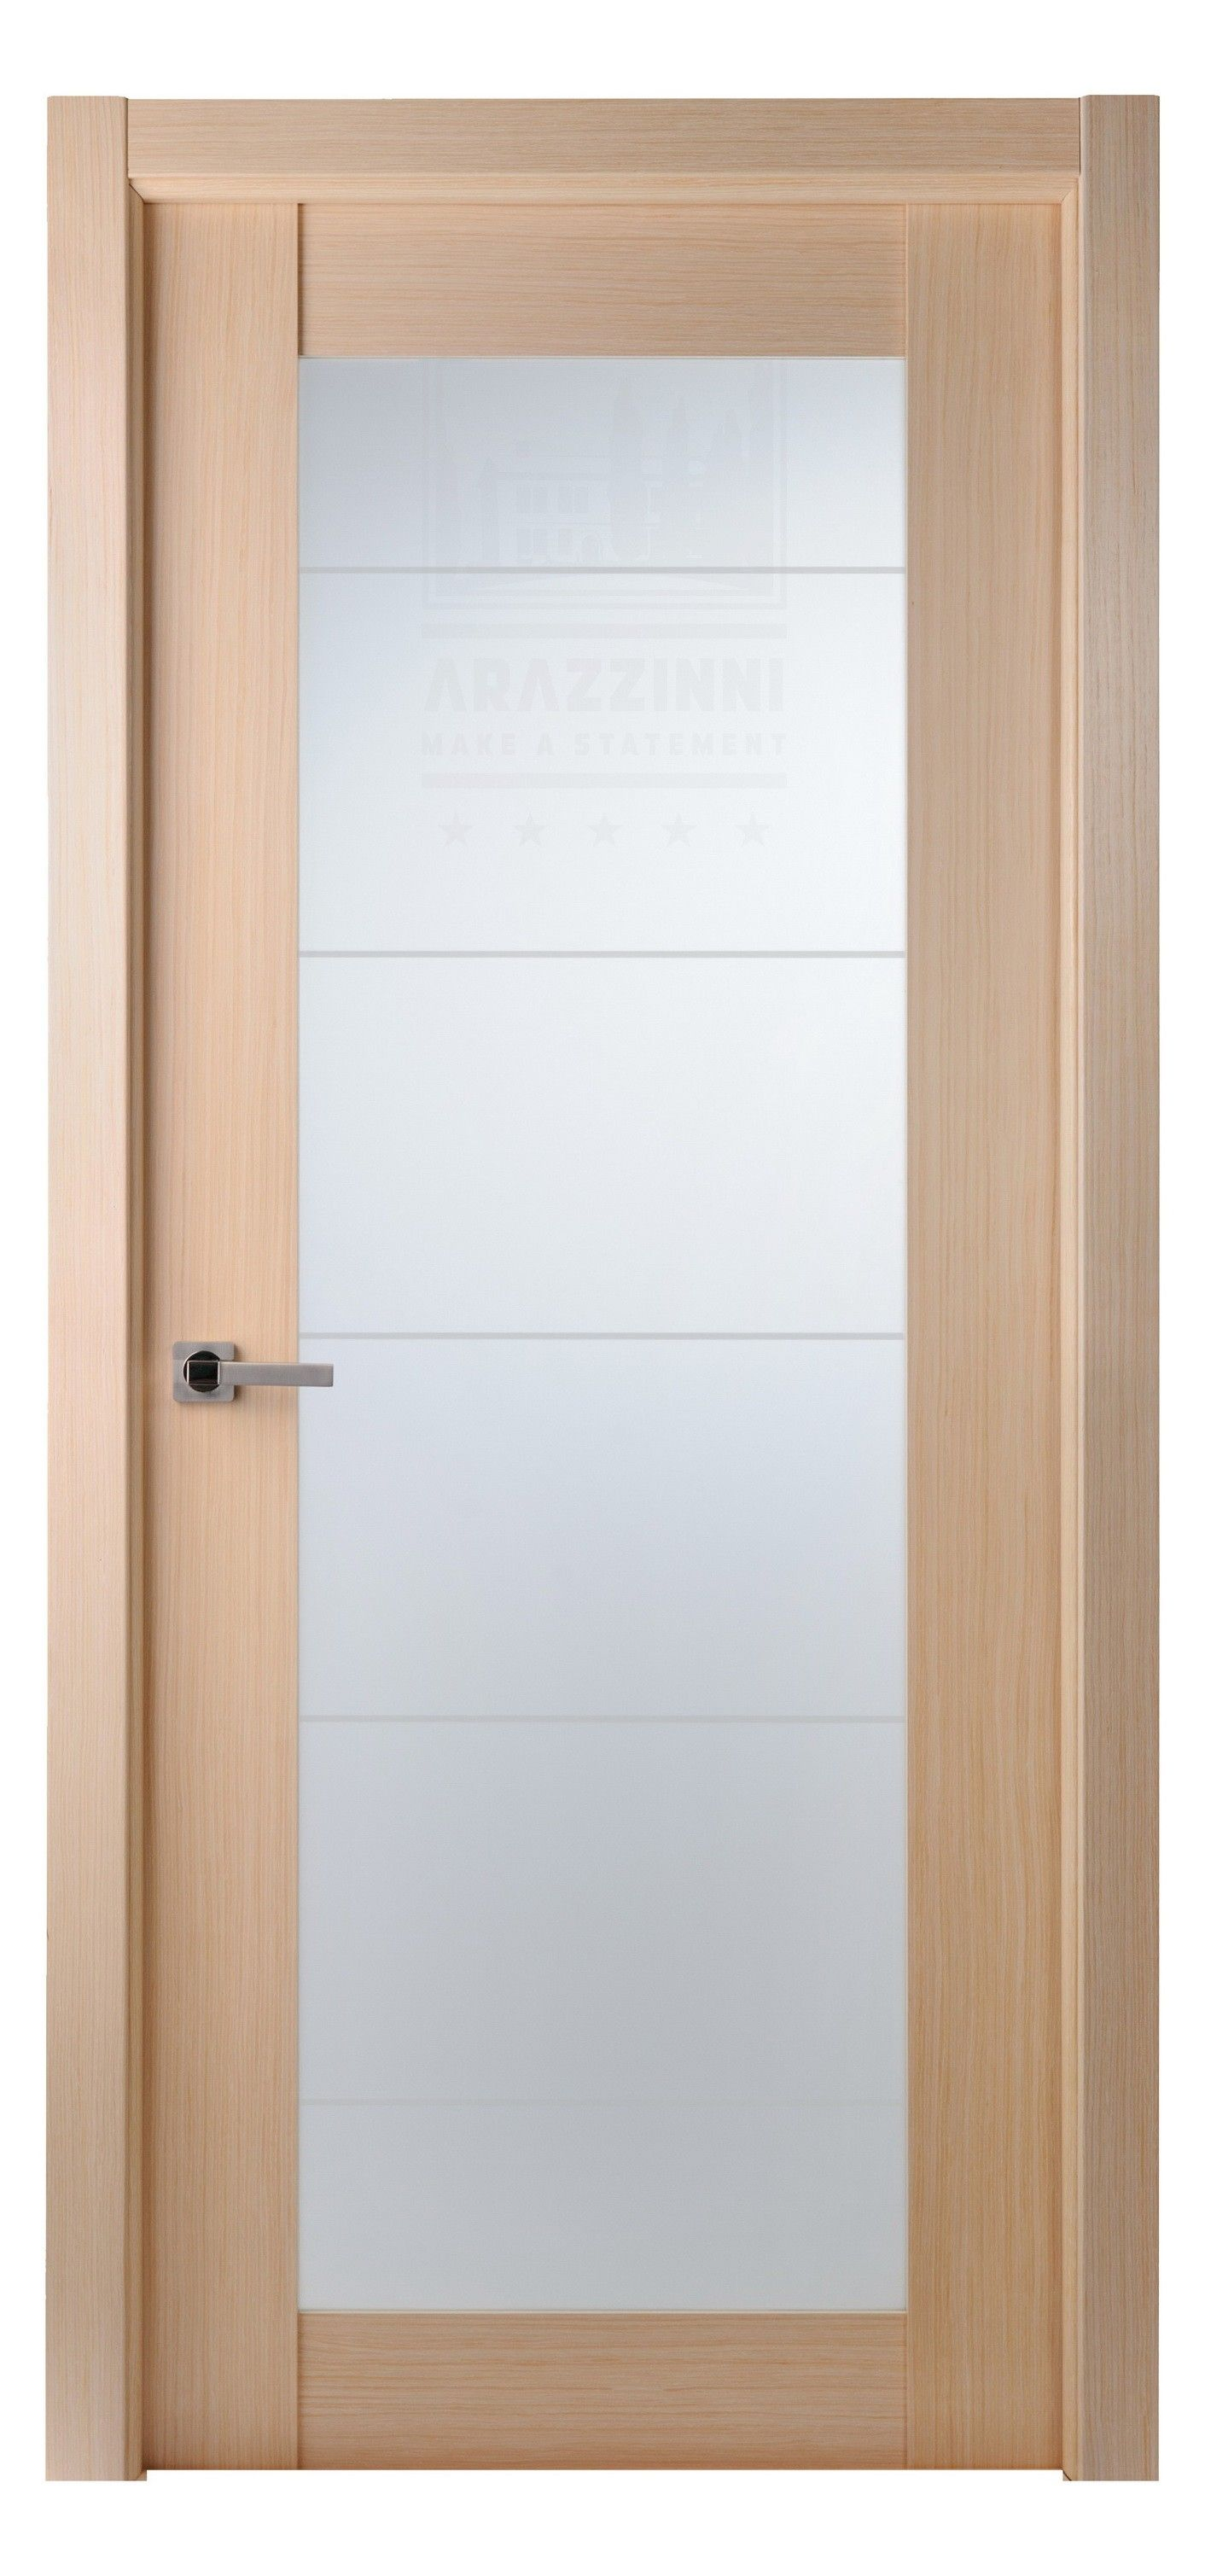 maximum 209 interior door in a bleached oak finish with frosted glass exotic wood veneer doors. Black Bedroom Furniture Sets. Home Design Ideas